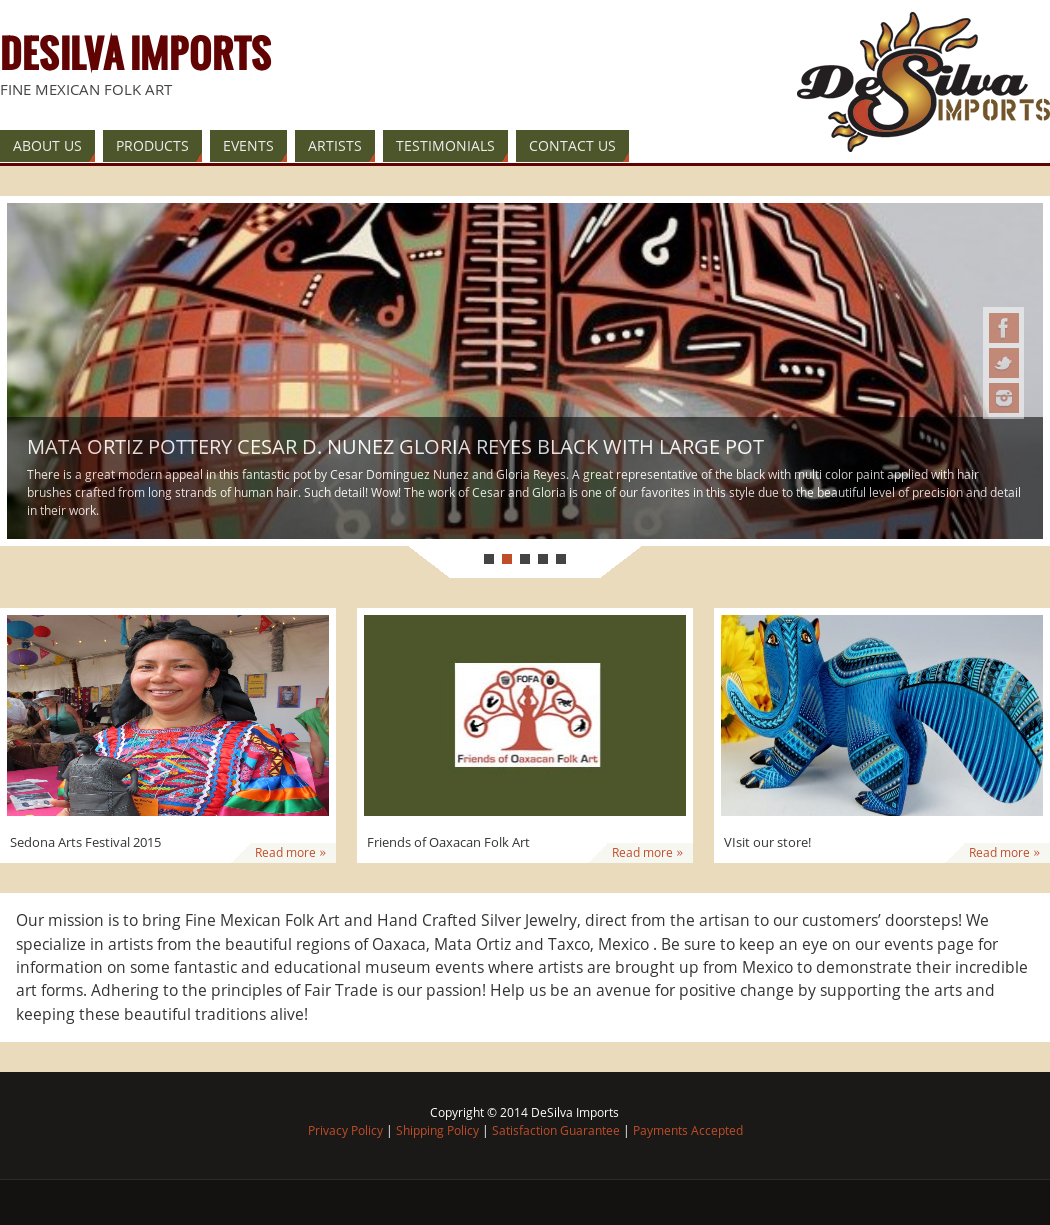 Desilva Imports Mexican Folk Art Competitors, Revenue and